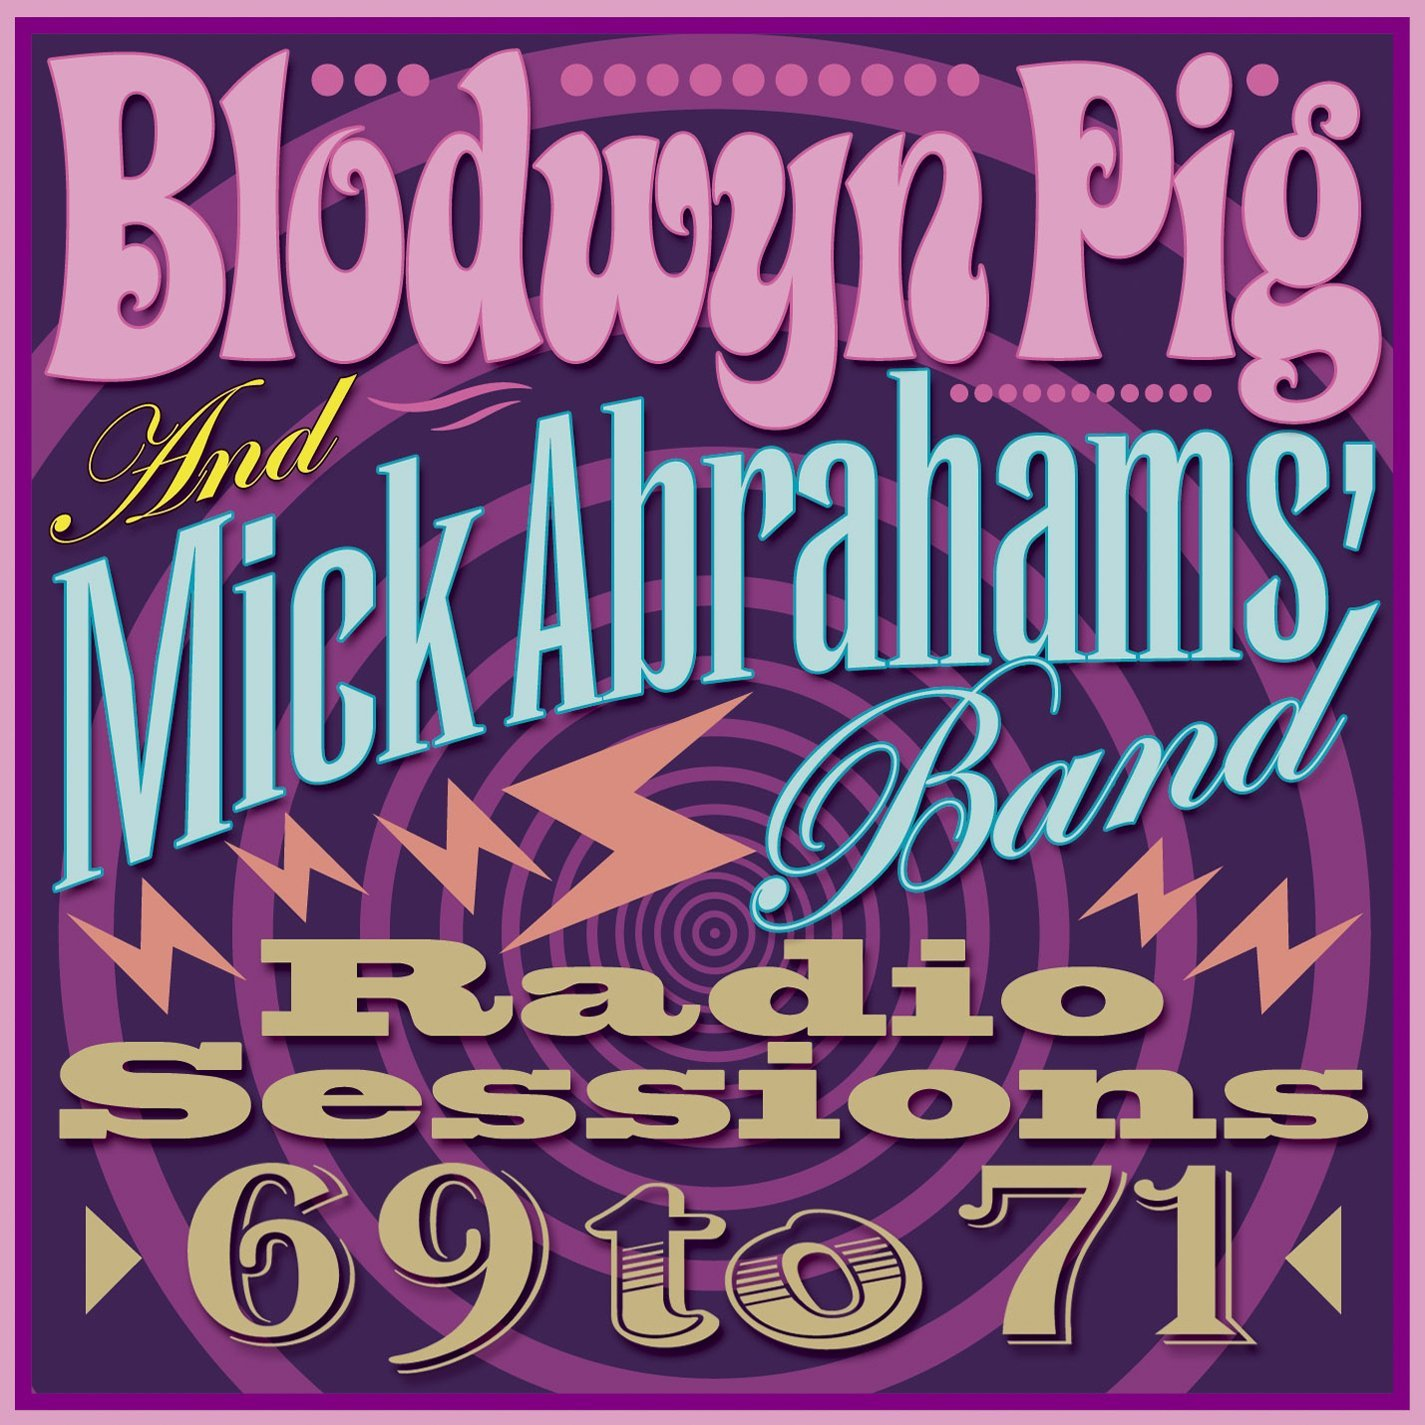 Blodwyn Pig / Mick Abrahams Band — Radio Sessions 69-71